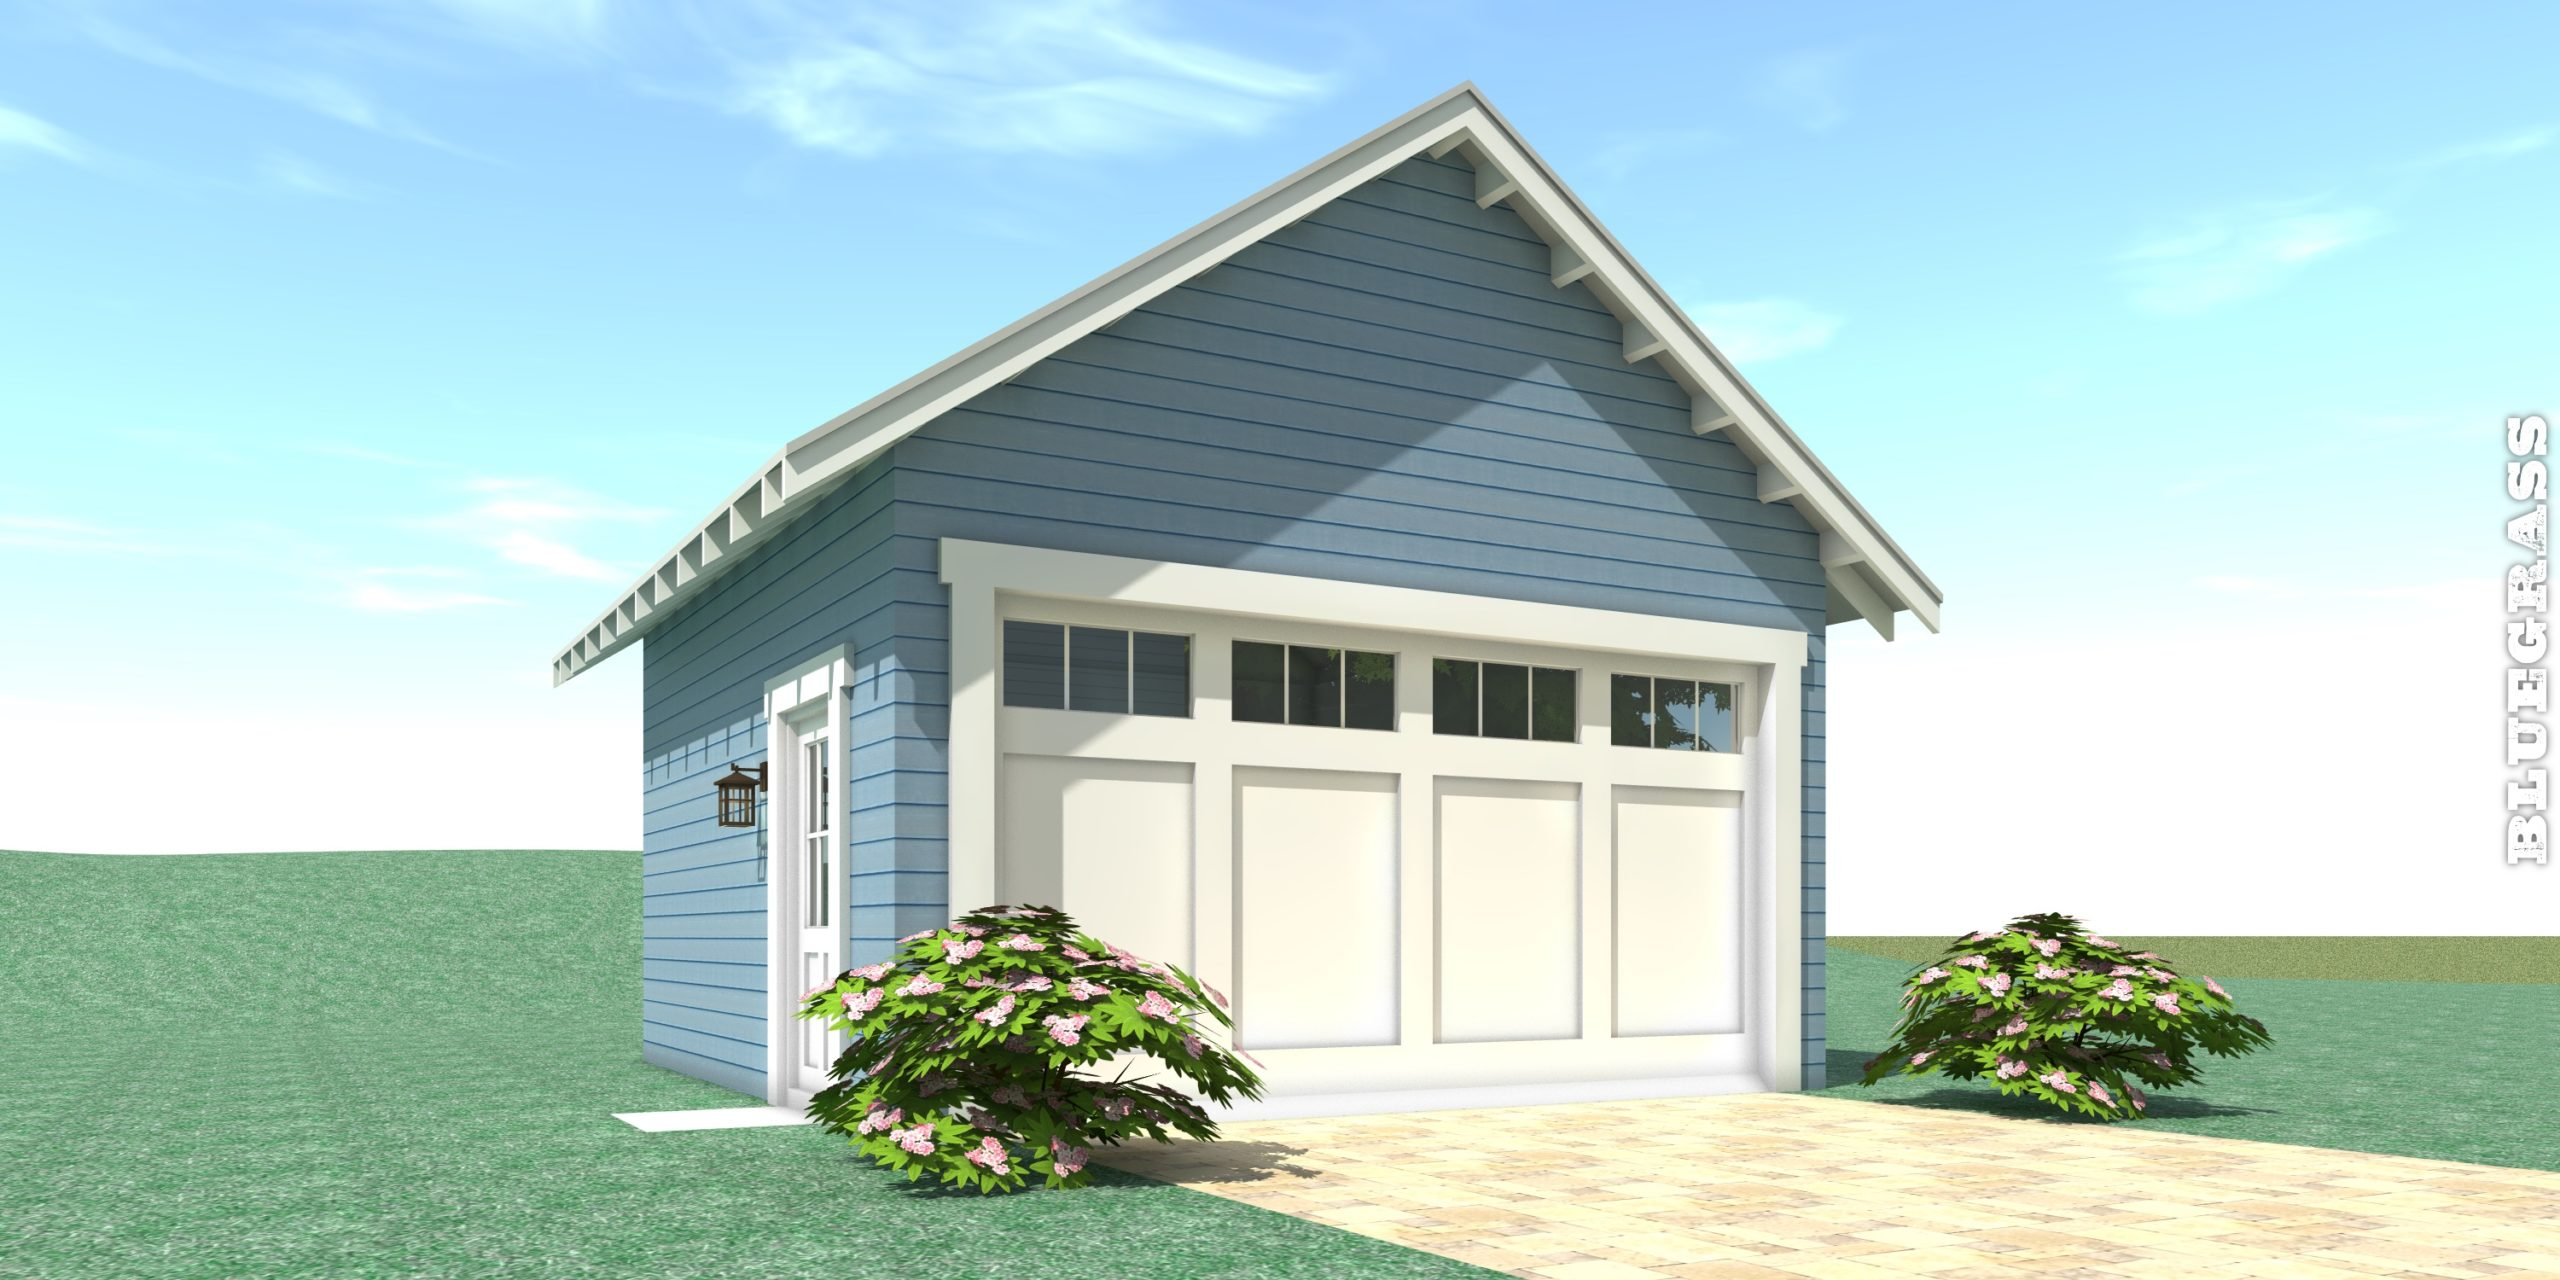 Bluegrass House Plan by Tyree House Plans